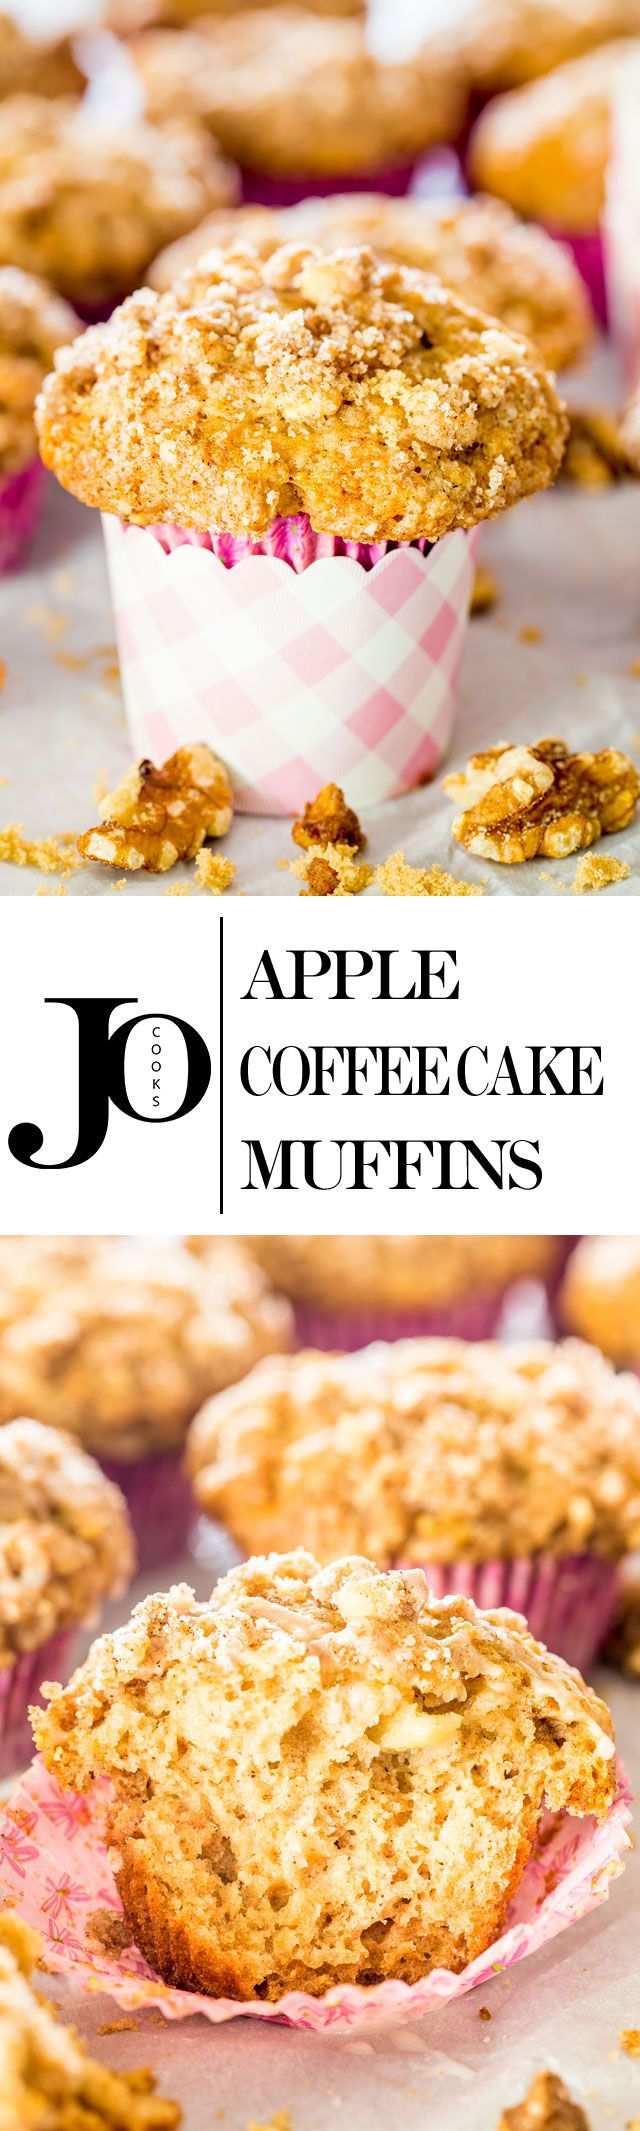 These Apple Coffee Cake Muffins are the perfect treat to surprise your mom on Mother's Day. Pieces of tender apples and walnuts in every bite, plus a delicious streusel topping.